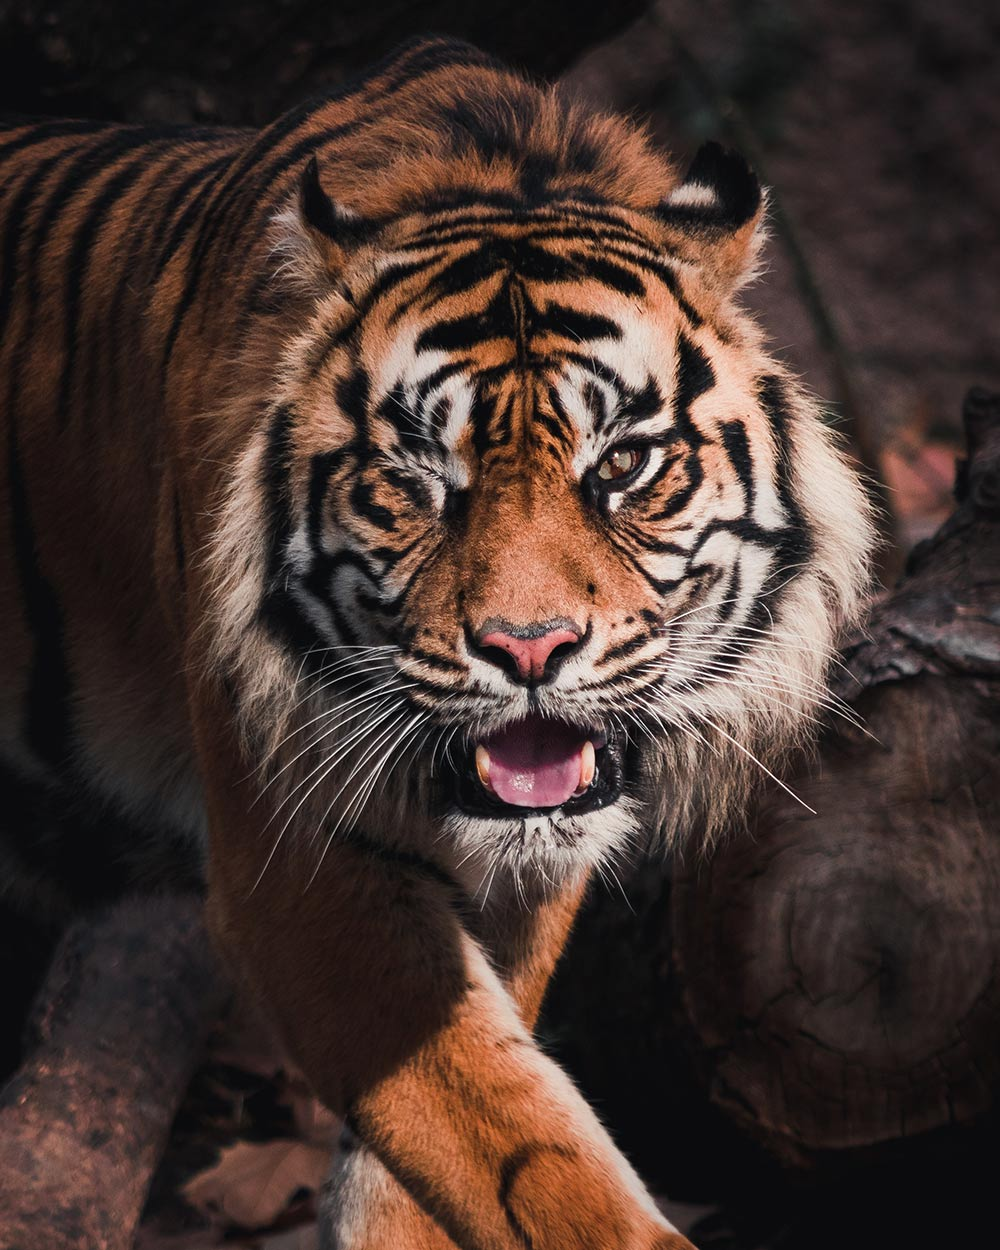 Anti-poaching efforts in Bangladesh are critical to saving this endangered species.